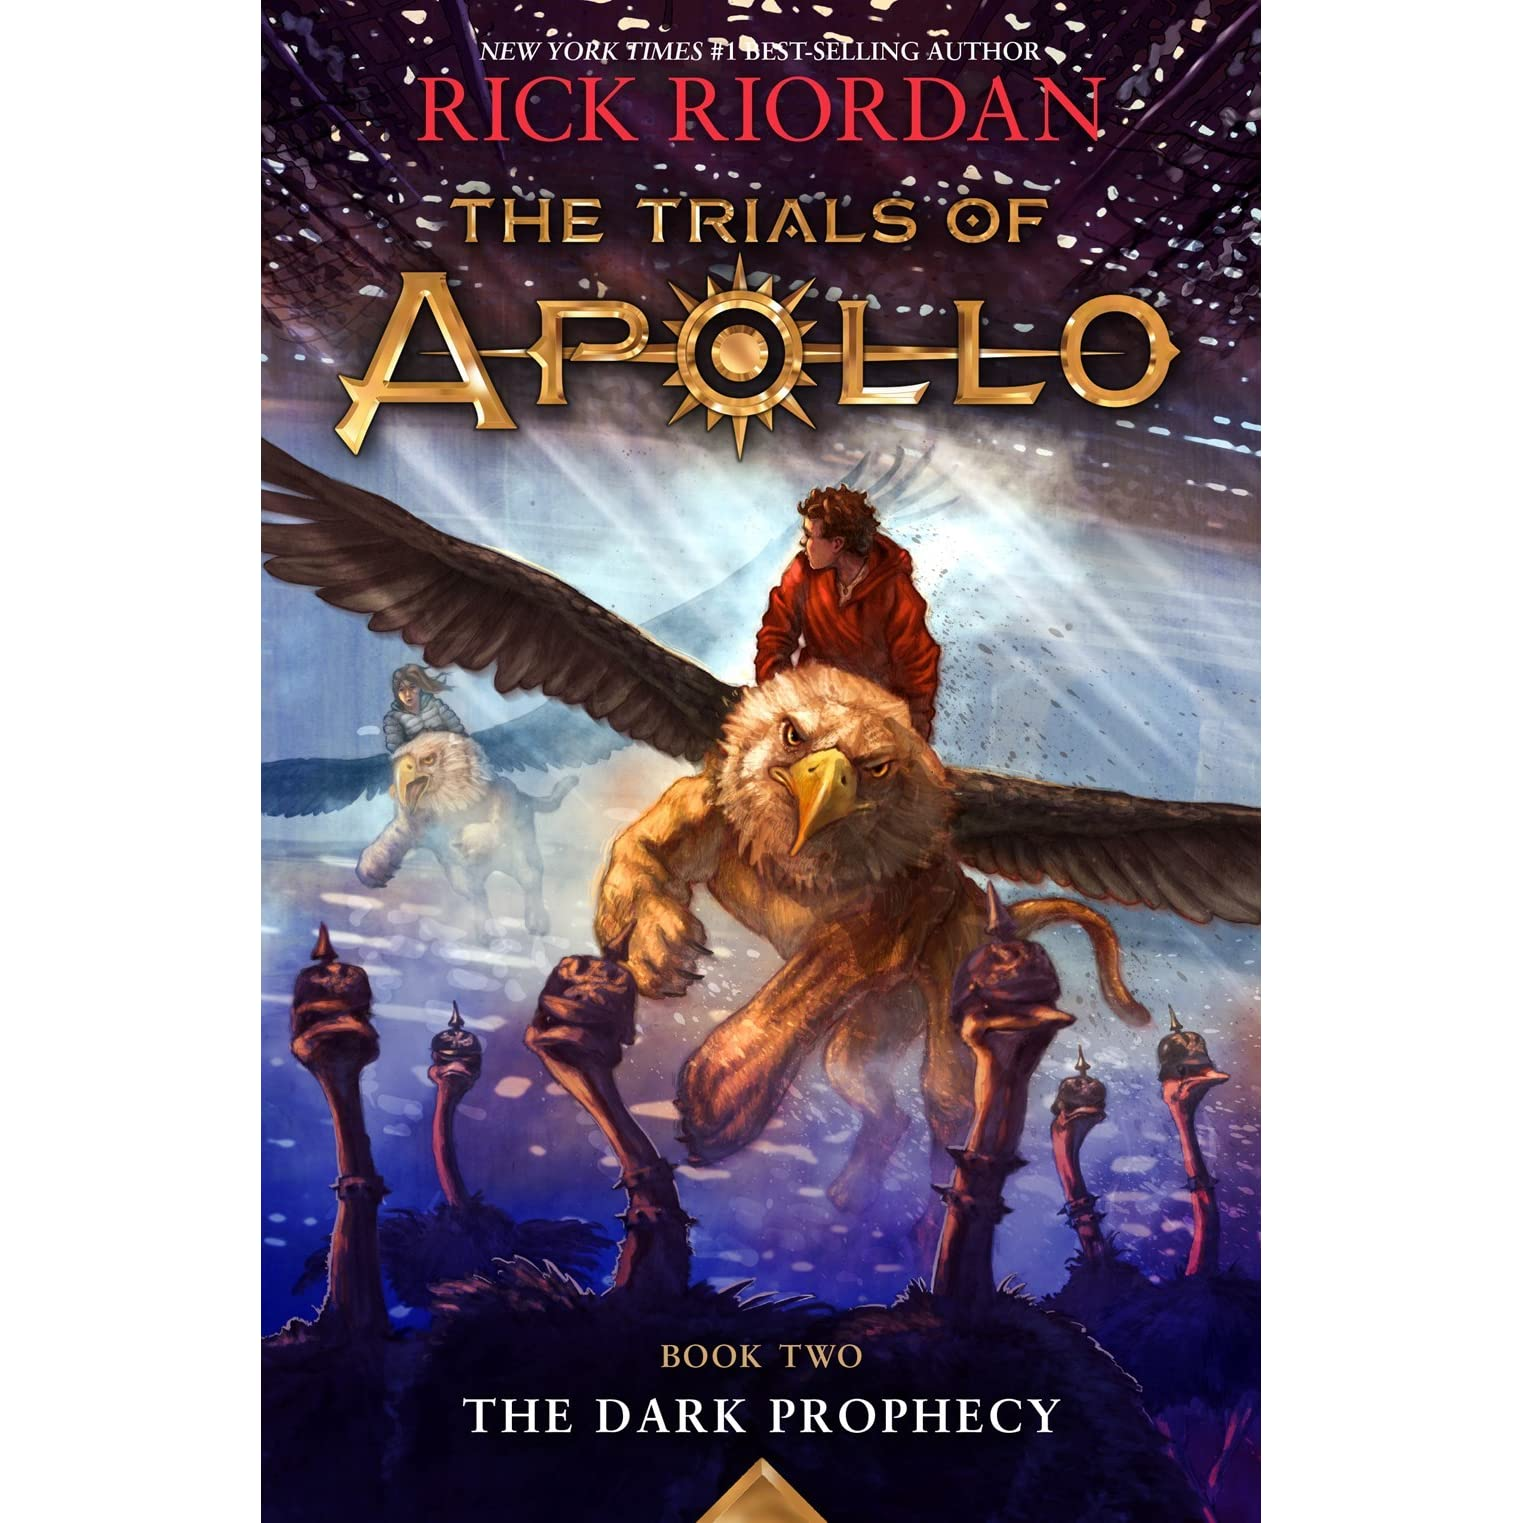 Image result for The dark prophecy goodreads